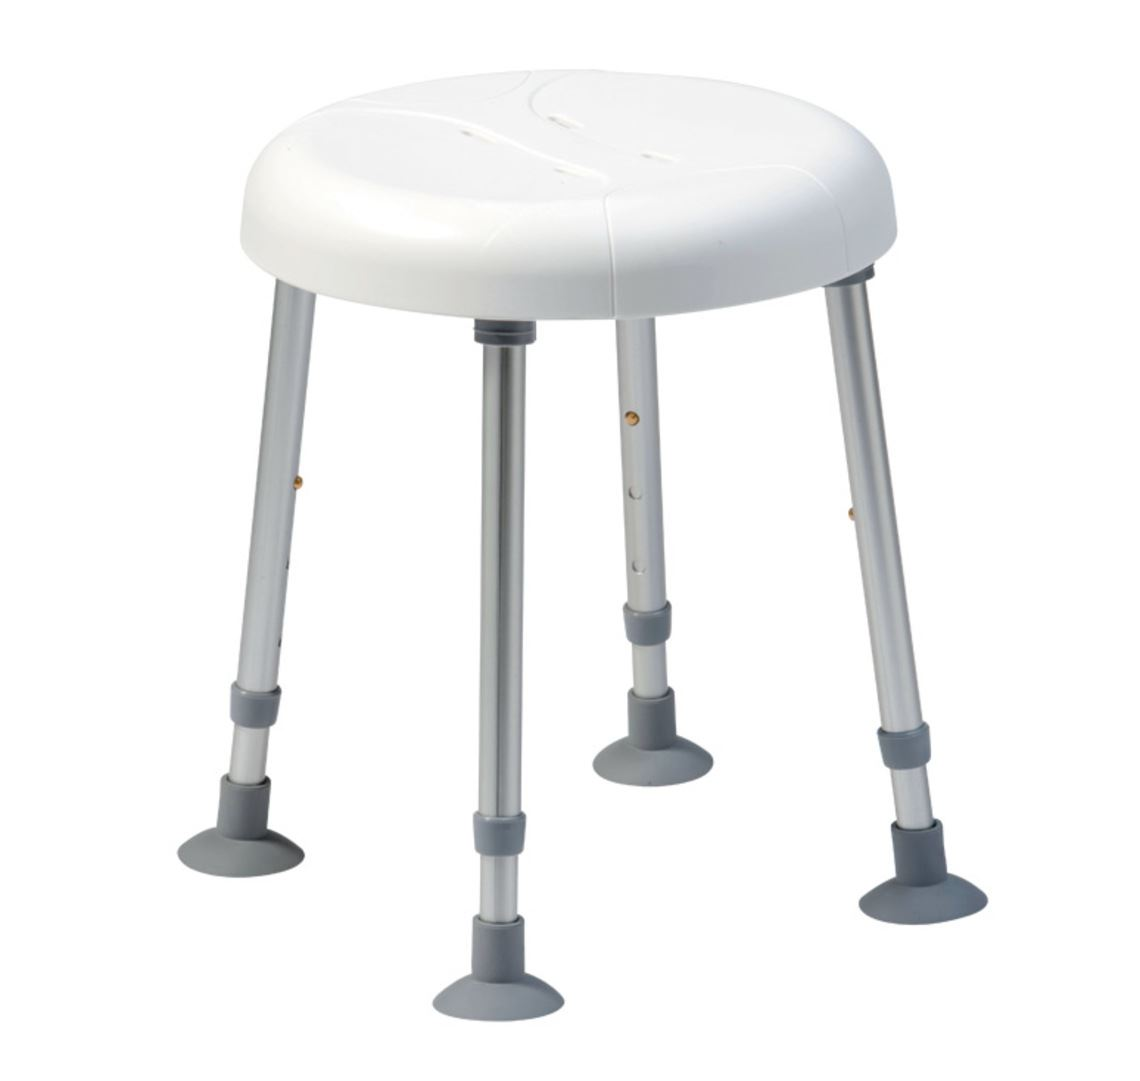 Picture for category Delphi Shower Stools